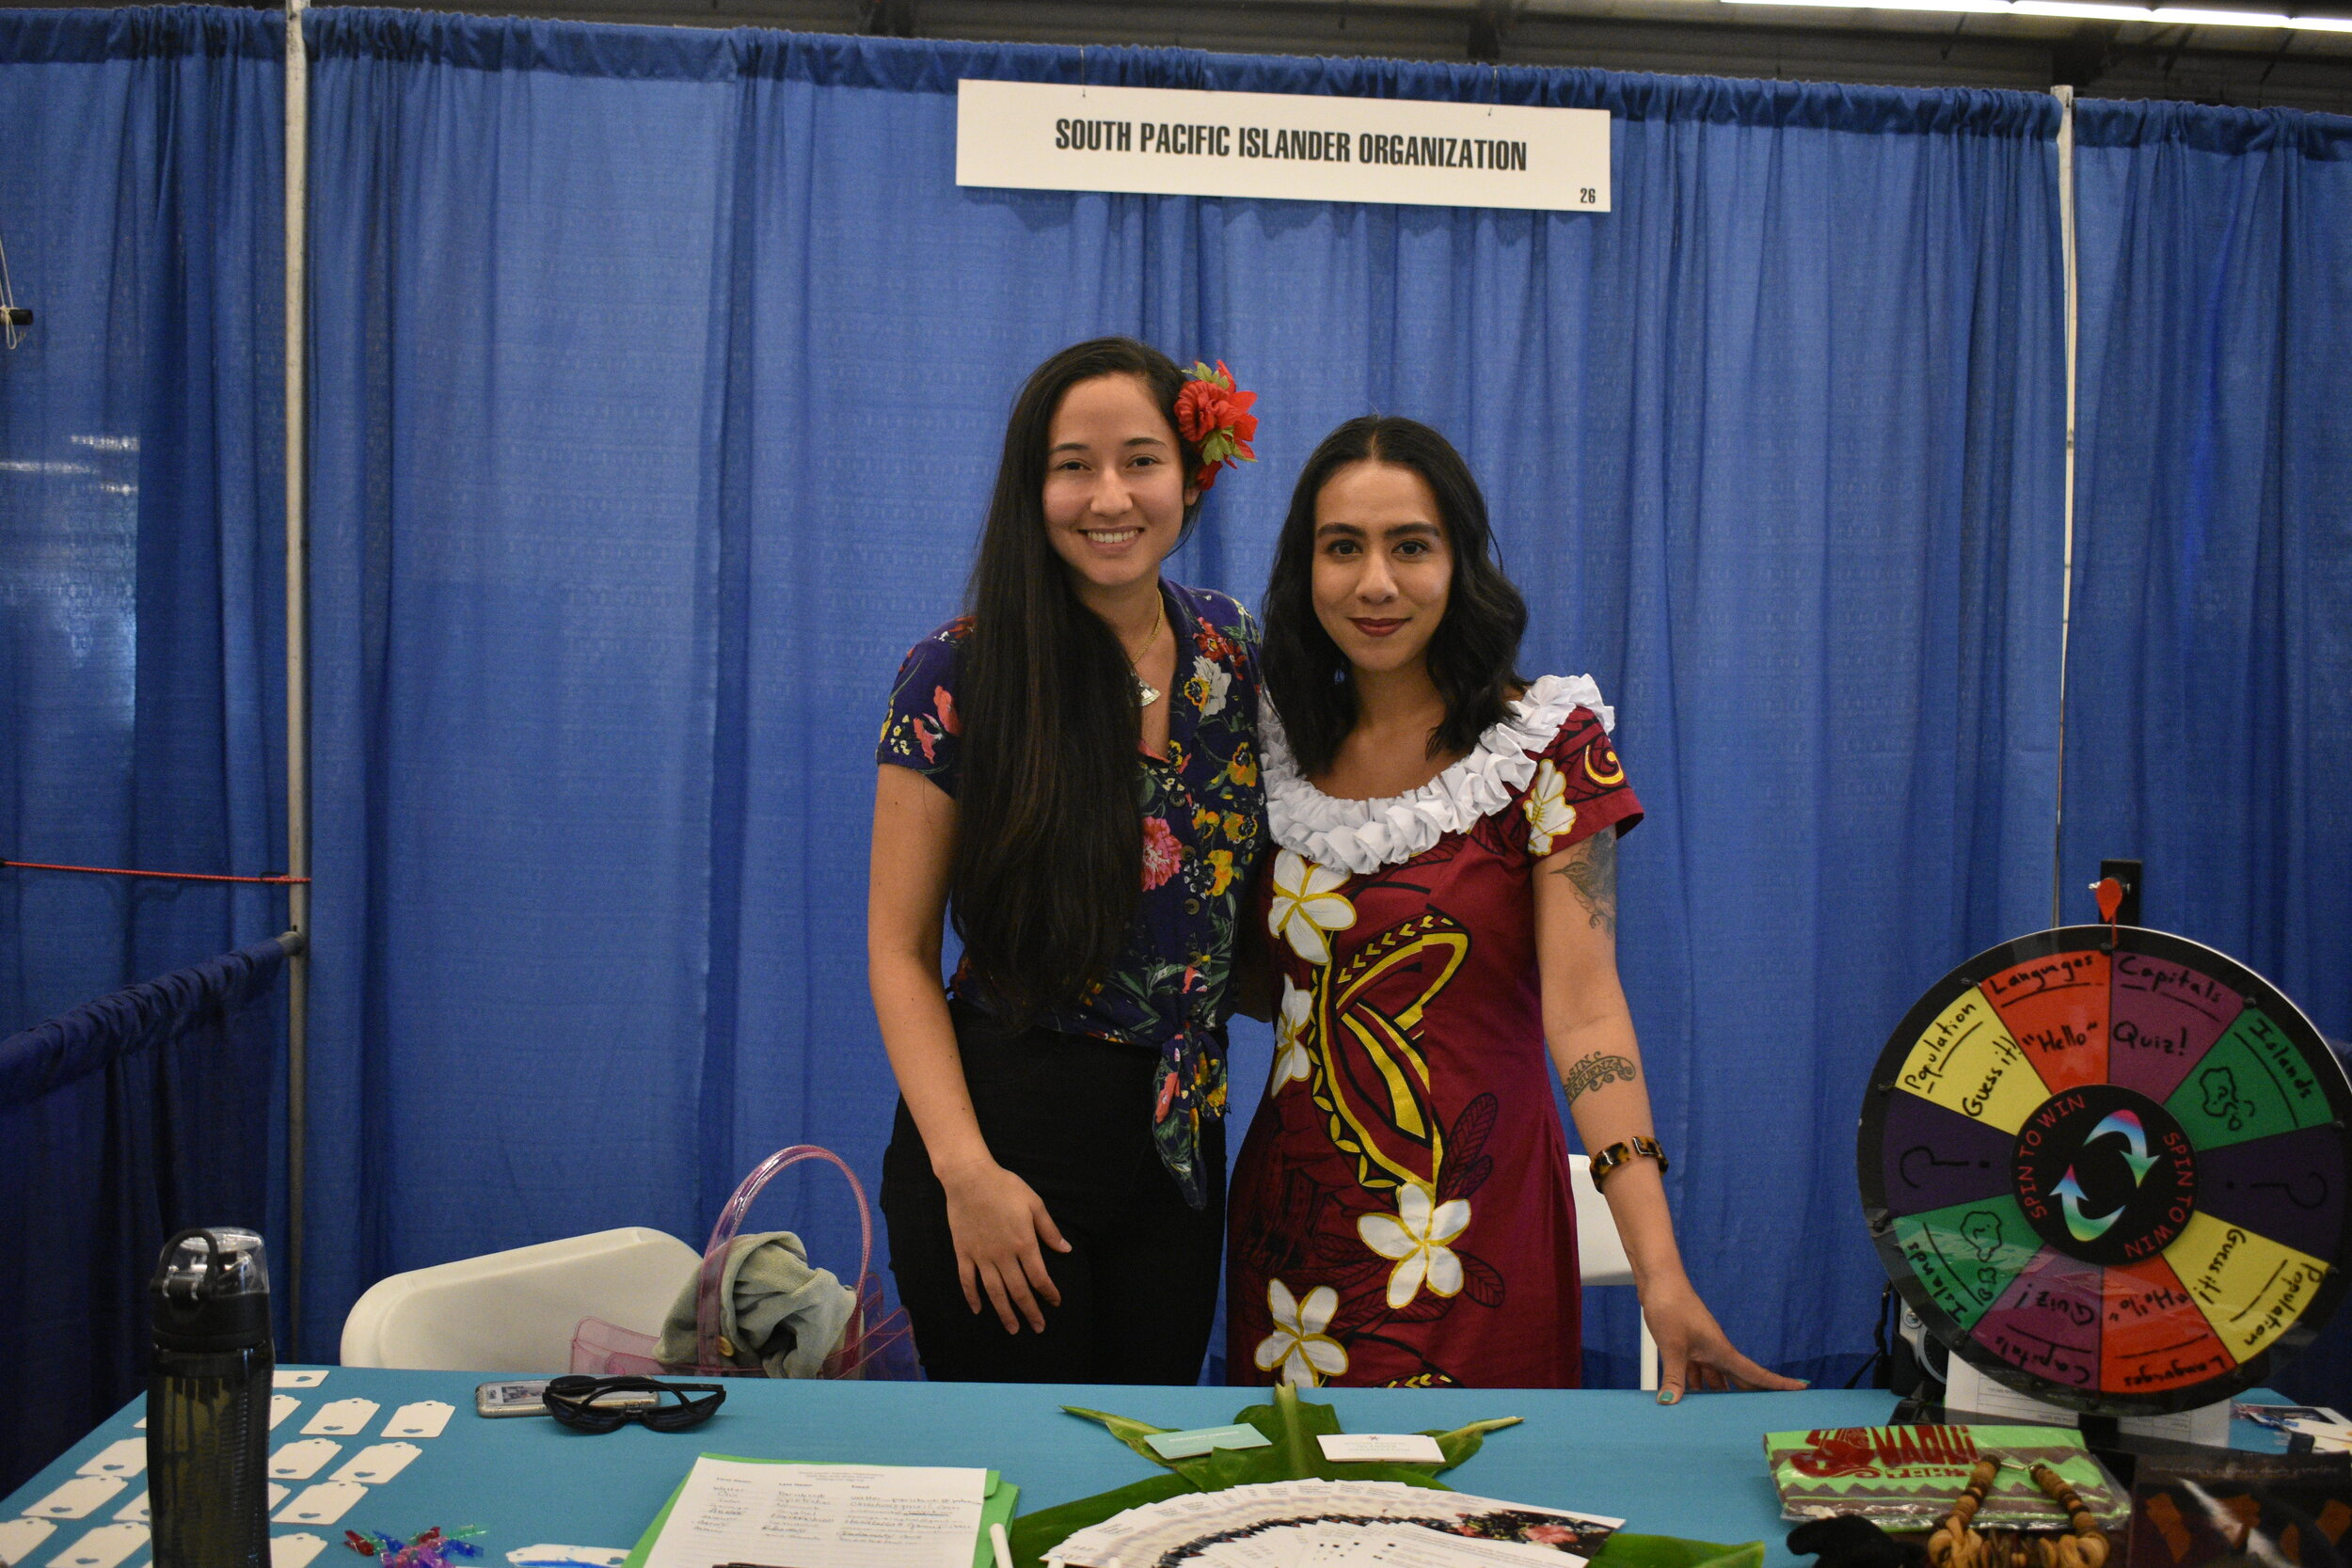 South Pacific Islander Organization (SPIO) board members, Marushka Raimere Hirshon and Seumanu Pou Dimitrijevich, sharing community resources at the 2019 Bay Area Aloha Festival in San Mateo, CA.